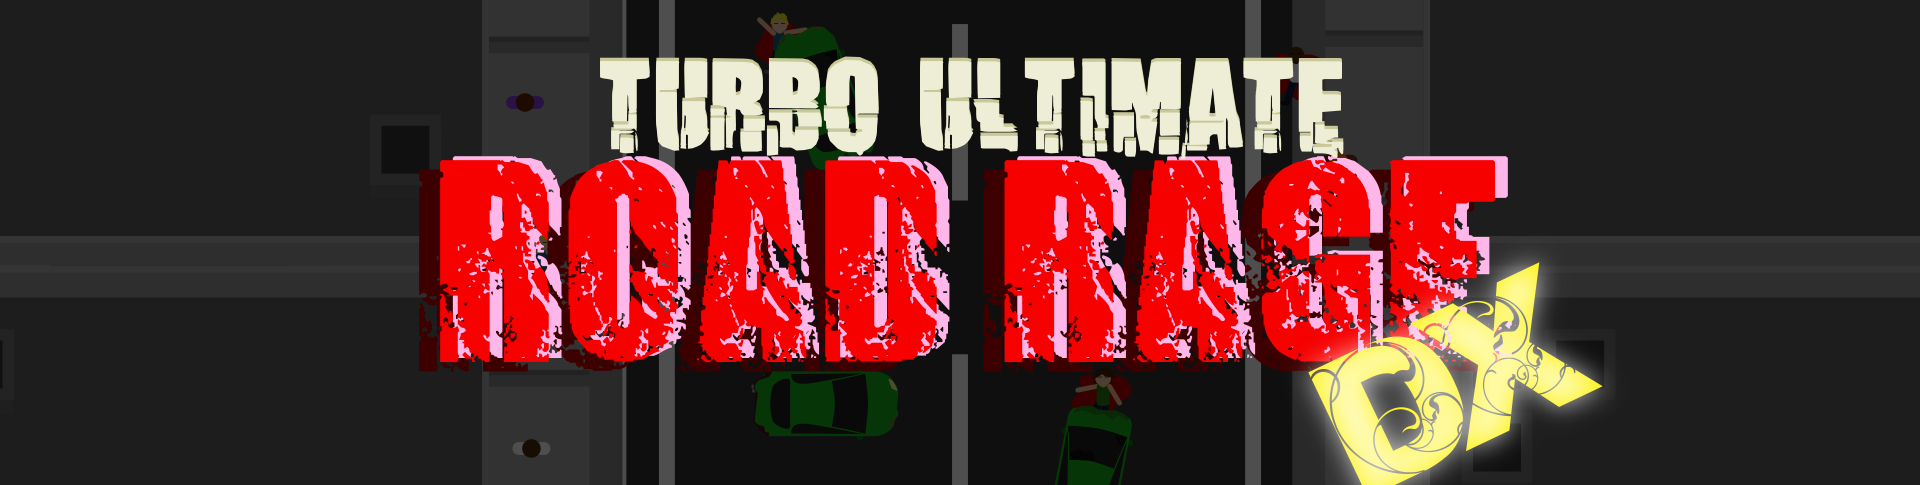 TURBO ULTIMATE ROAD RAGE DX